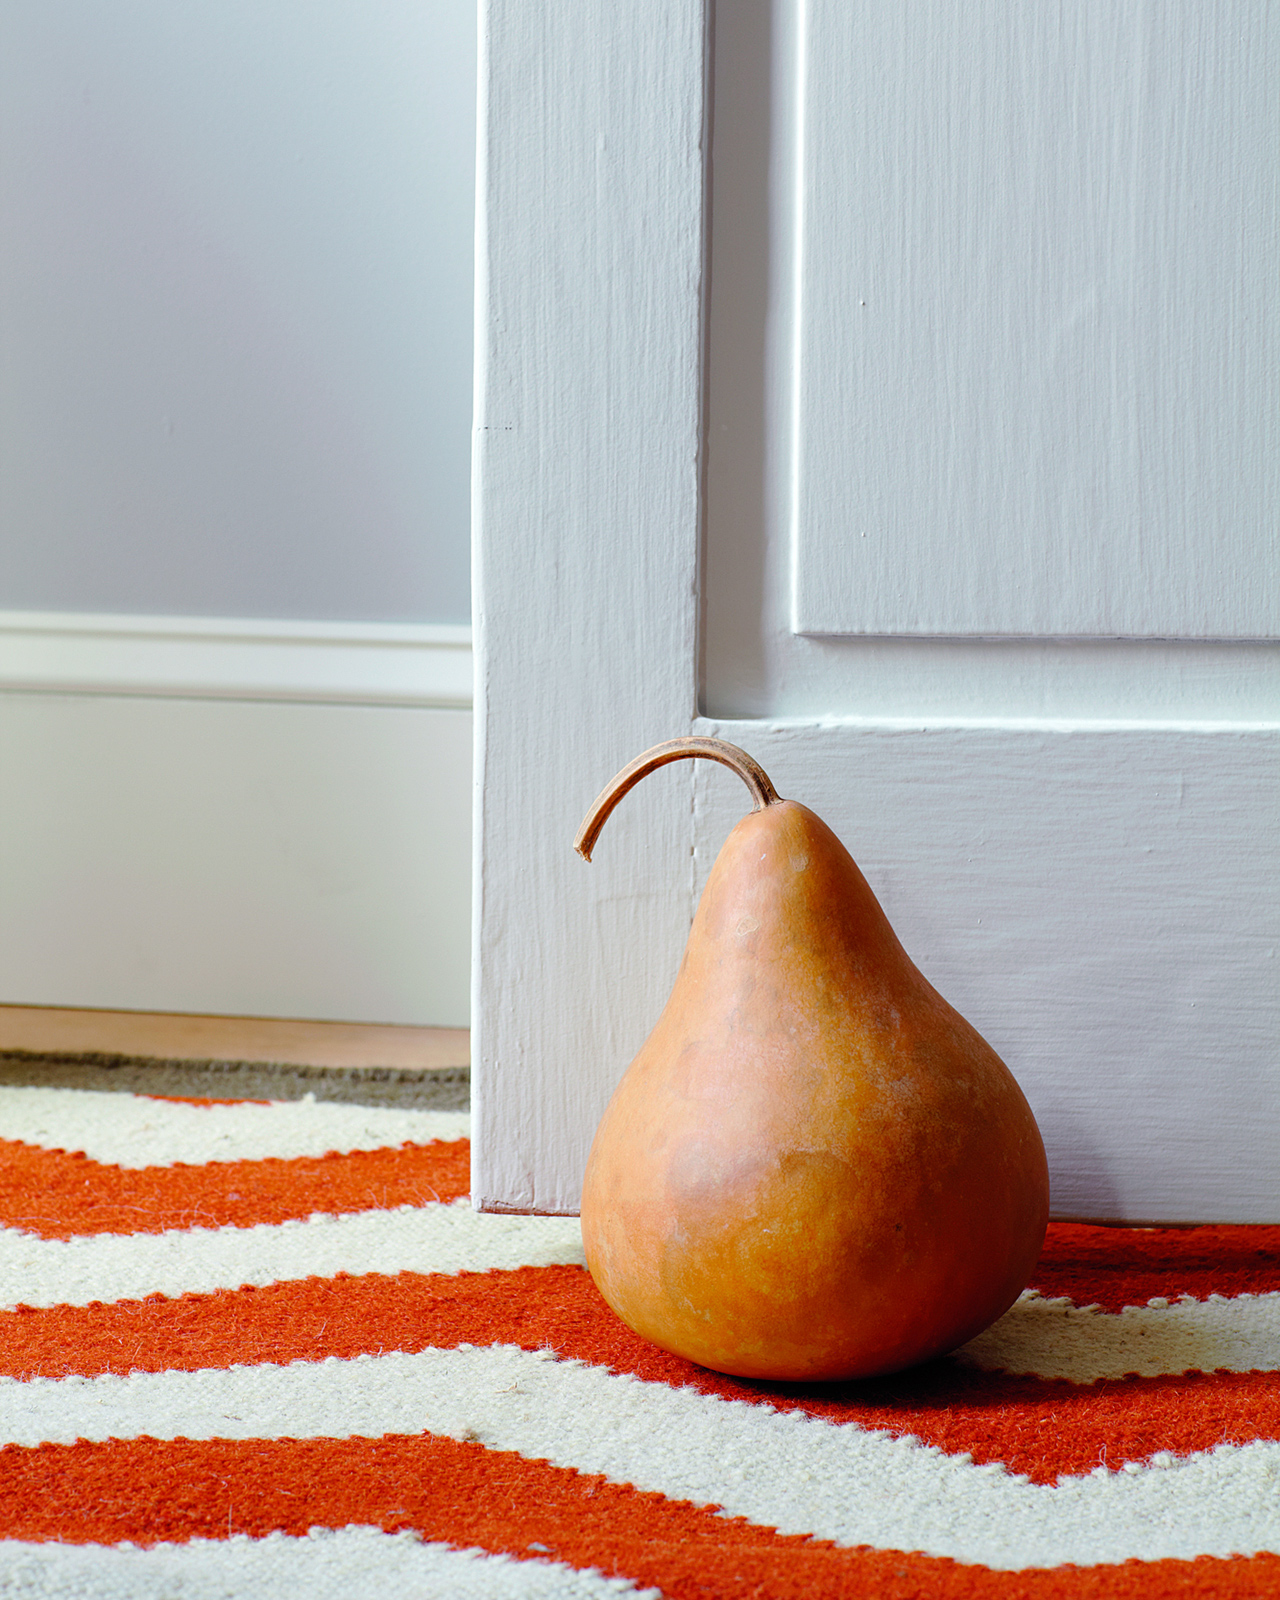 gourd placed door stopper on orange stripe carpet